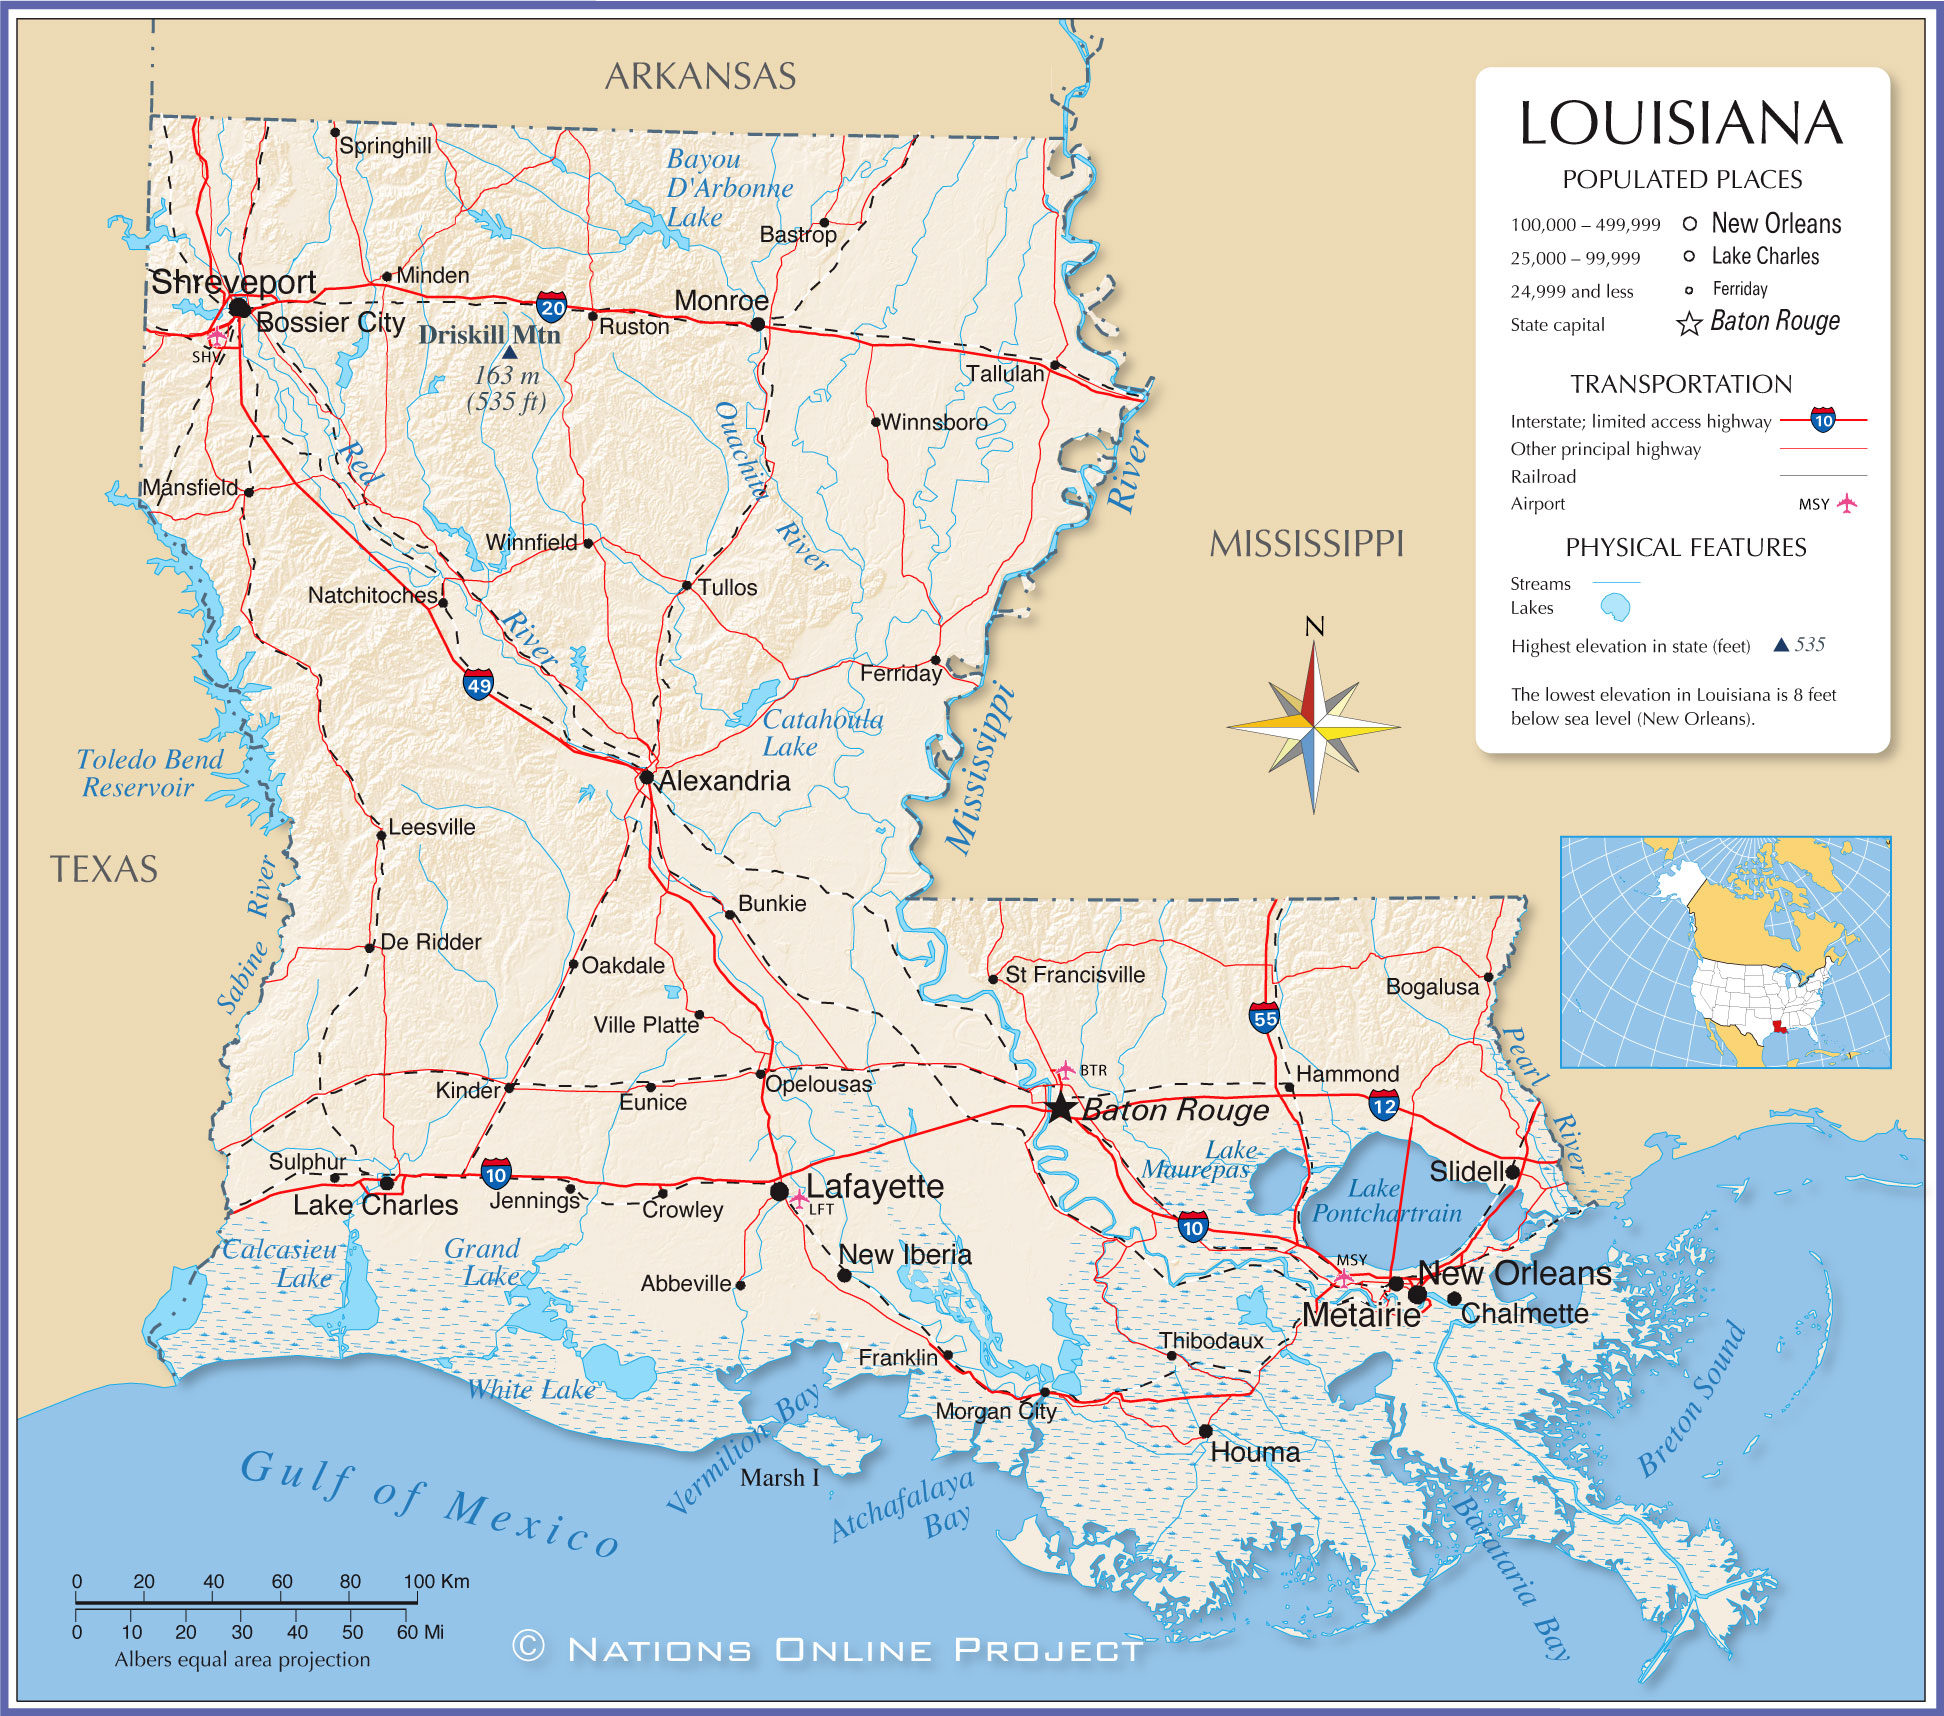 Reference Maps of Louisiana, USA - Nations Online Project on show map of louisiana, real map of louisiana, google maps louisiana, full size map of louisiana, atlas of louisiana, towns in louisiana, towns of louisiana, all cities in louisiana, usa map louisiana, printable map of state louisiana, map of cities of louisiana, early maps of louisiana, political map of louisiana, marksville louisiana, physical map of louisiana, large map of louisiana, beaches of louisiana, county map of louisiana, maps by parish louisiana, satellite map of louisiana,